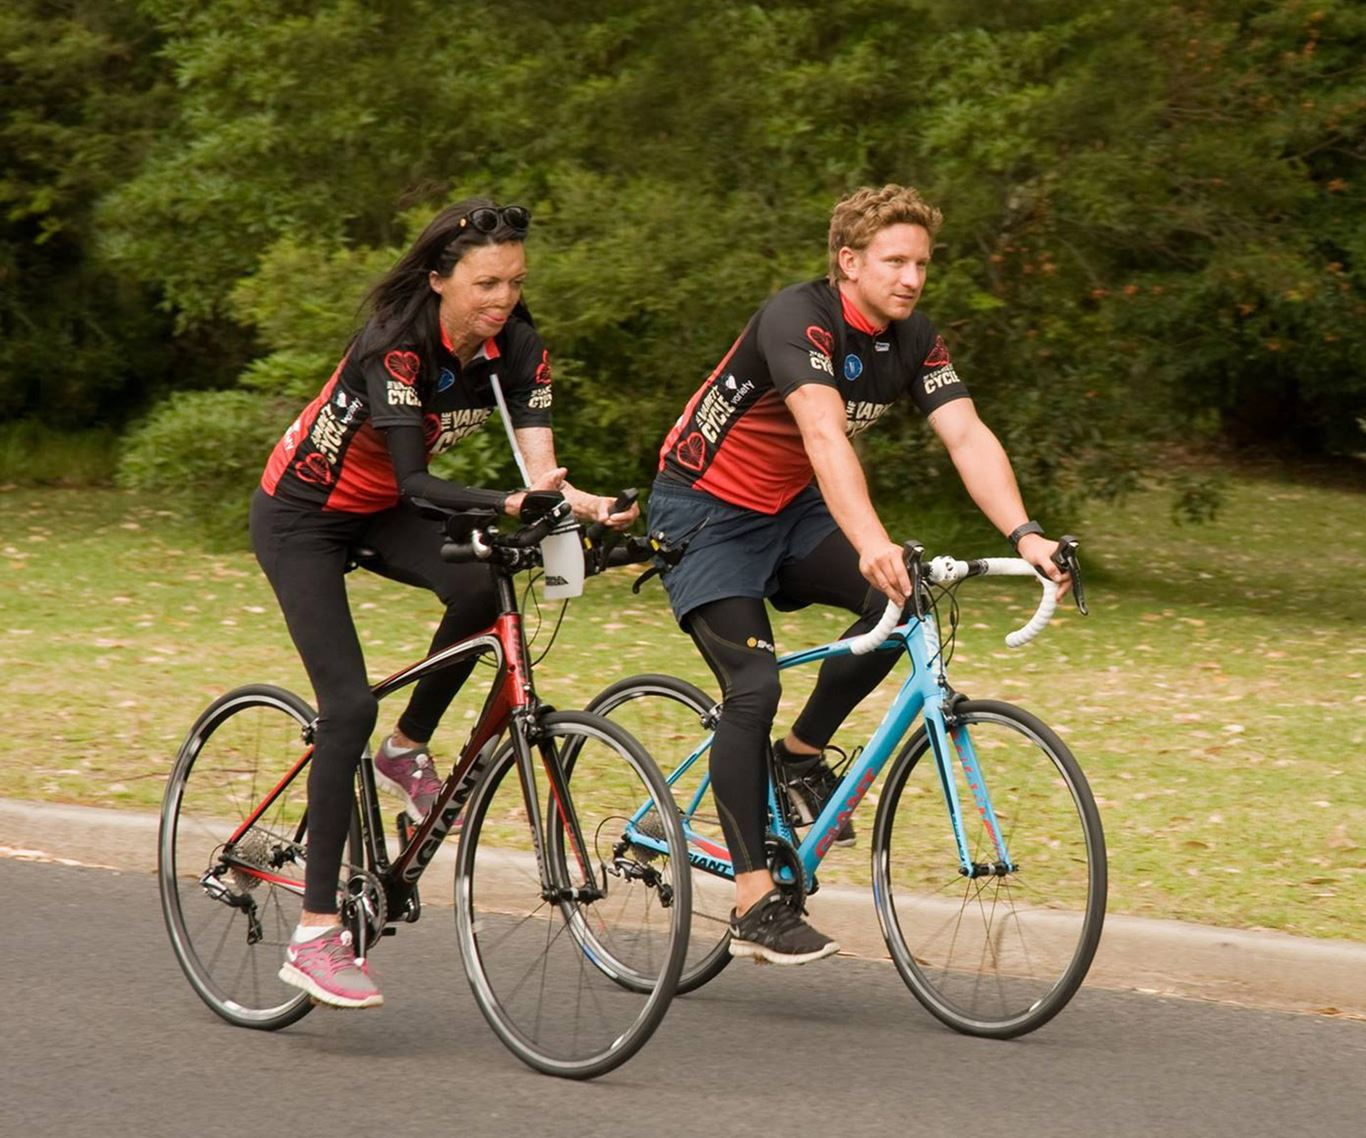 In pictures: Turia Pitt and Michael Hoskin's love story:She's a woman with an unstoppable spirit and it is easy to see why Micahel is so in-love with Turia. The pair are living life to the fullest.